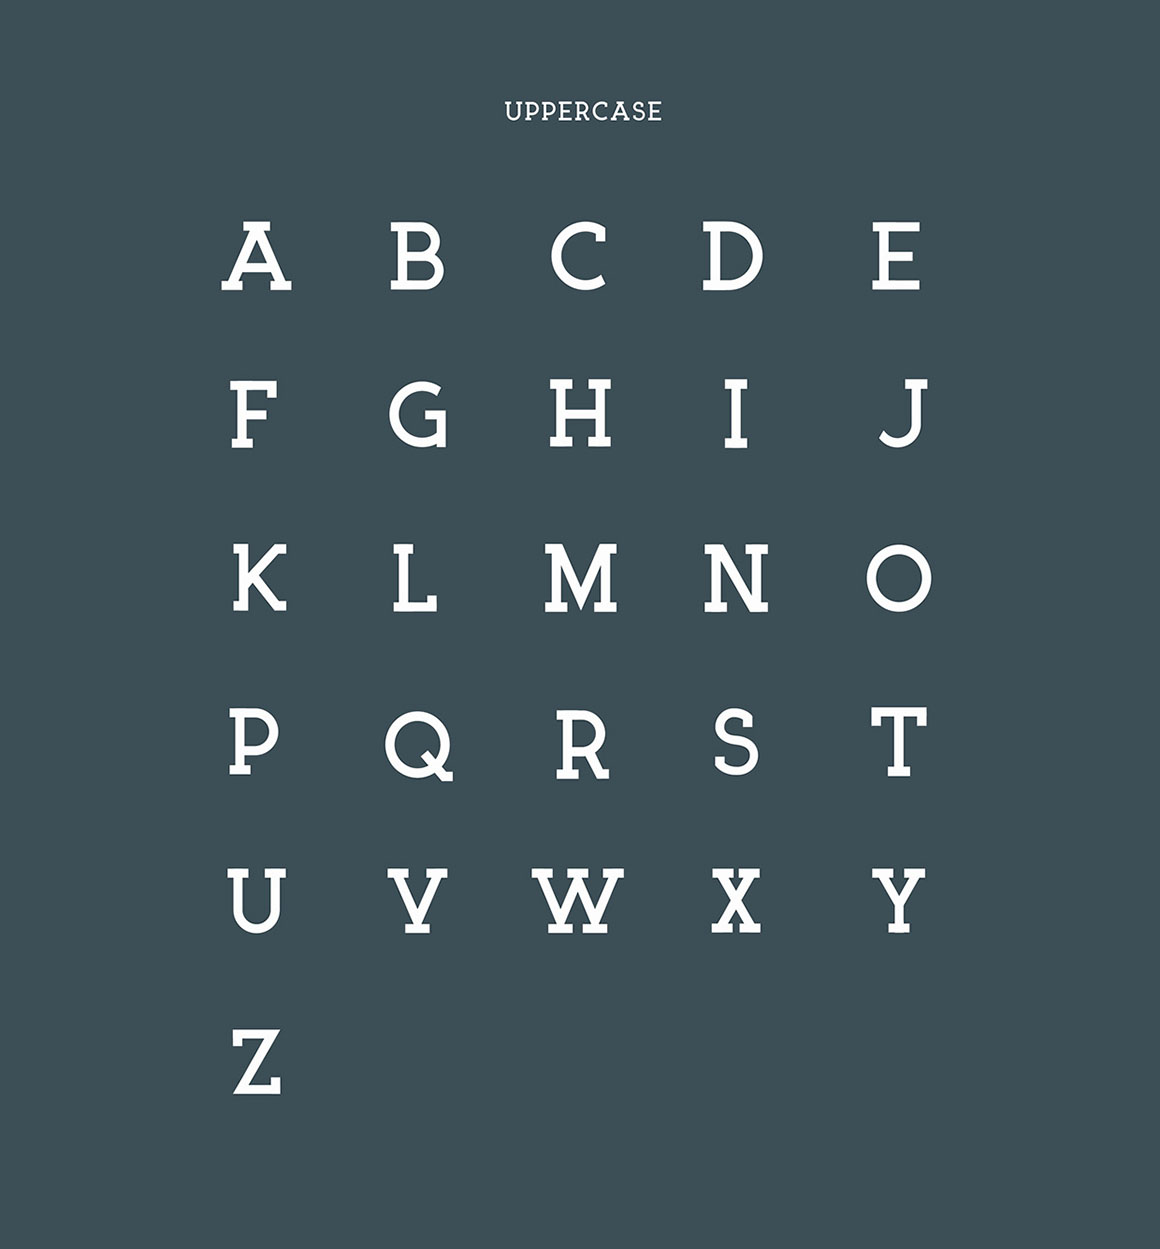 Arctic font befonts arctic font full page biocorpaavc Choice Image